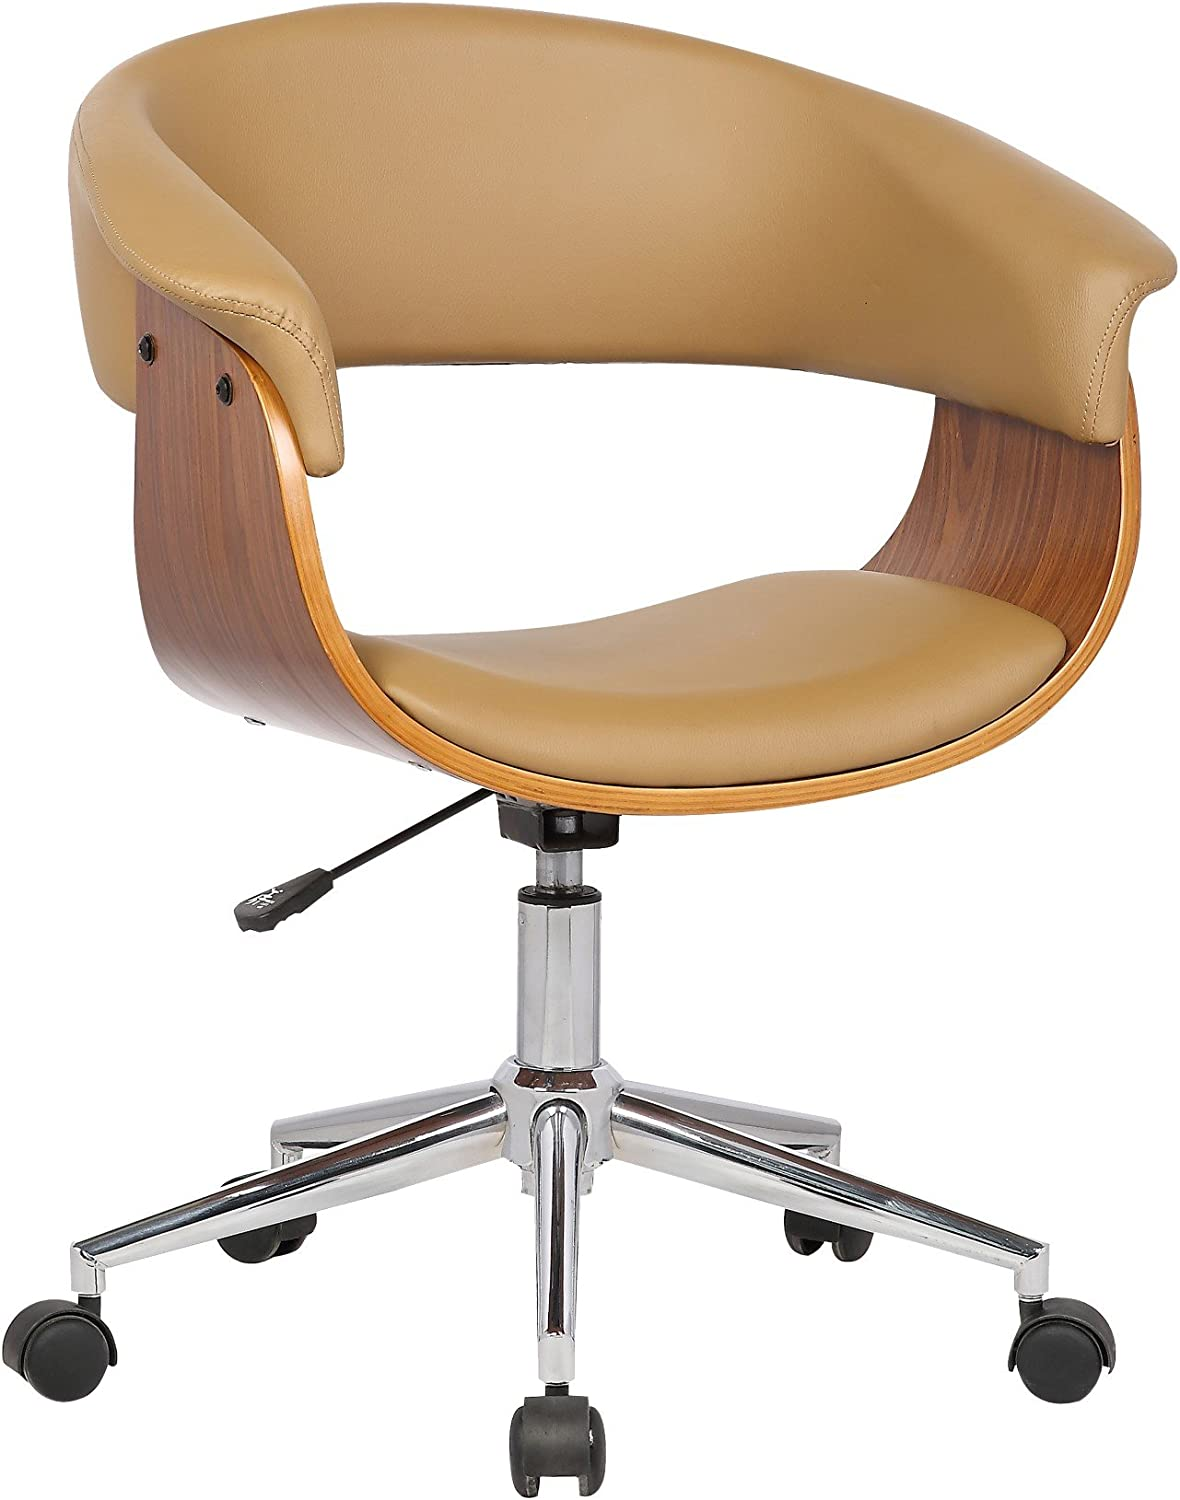 Porthos Home Atrium Comfortable Executive Height Adjustable, Durable, as a Home Office Chair, One Size, Natural